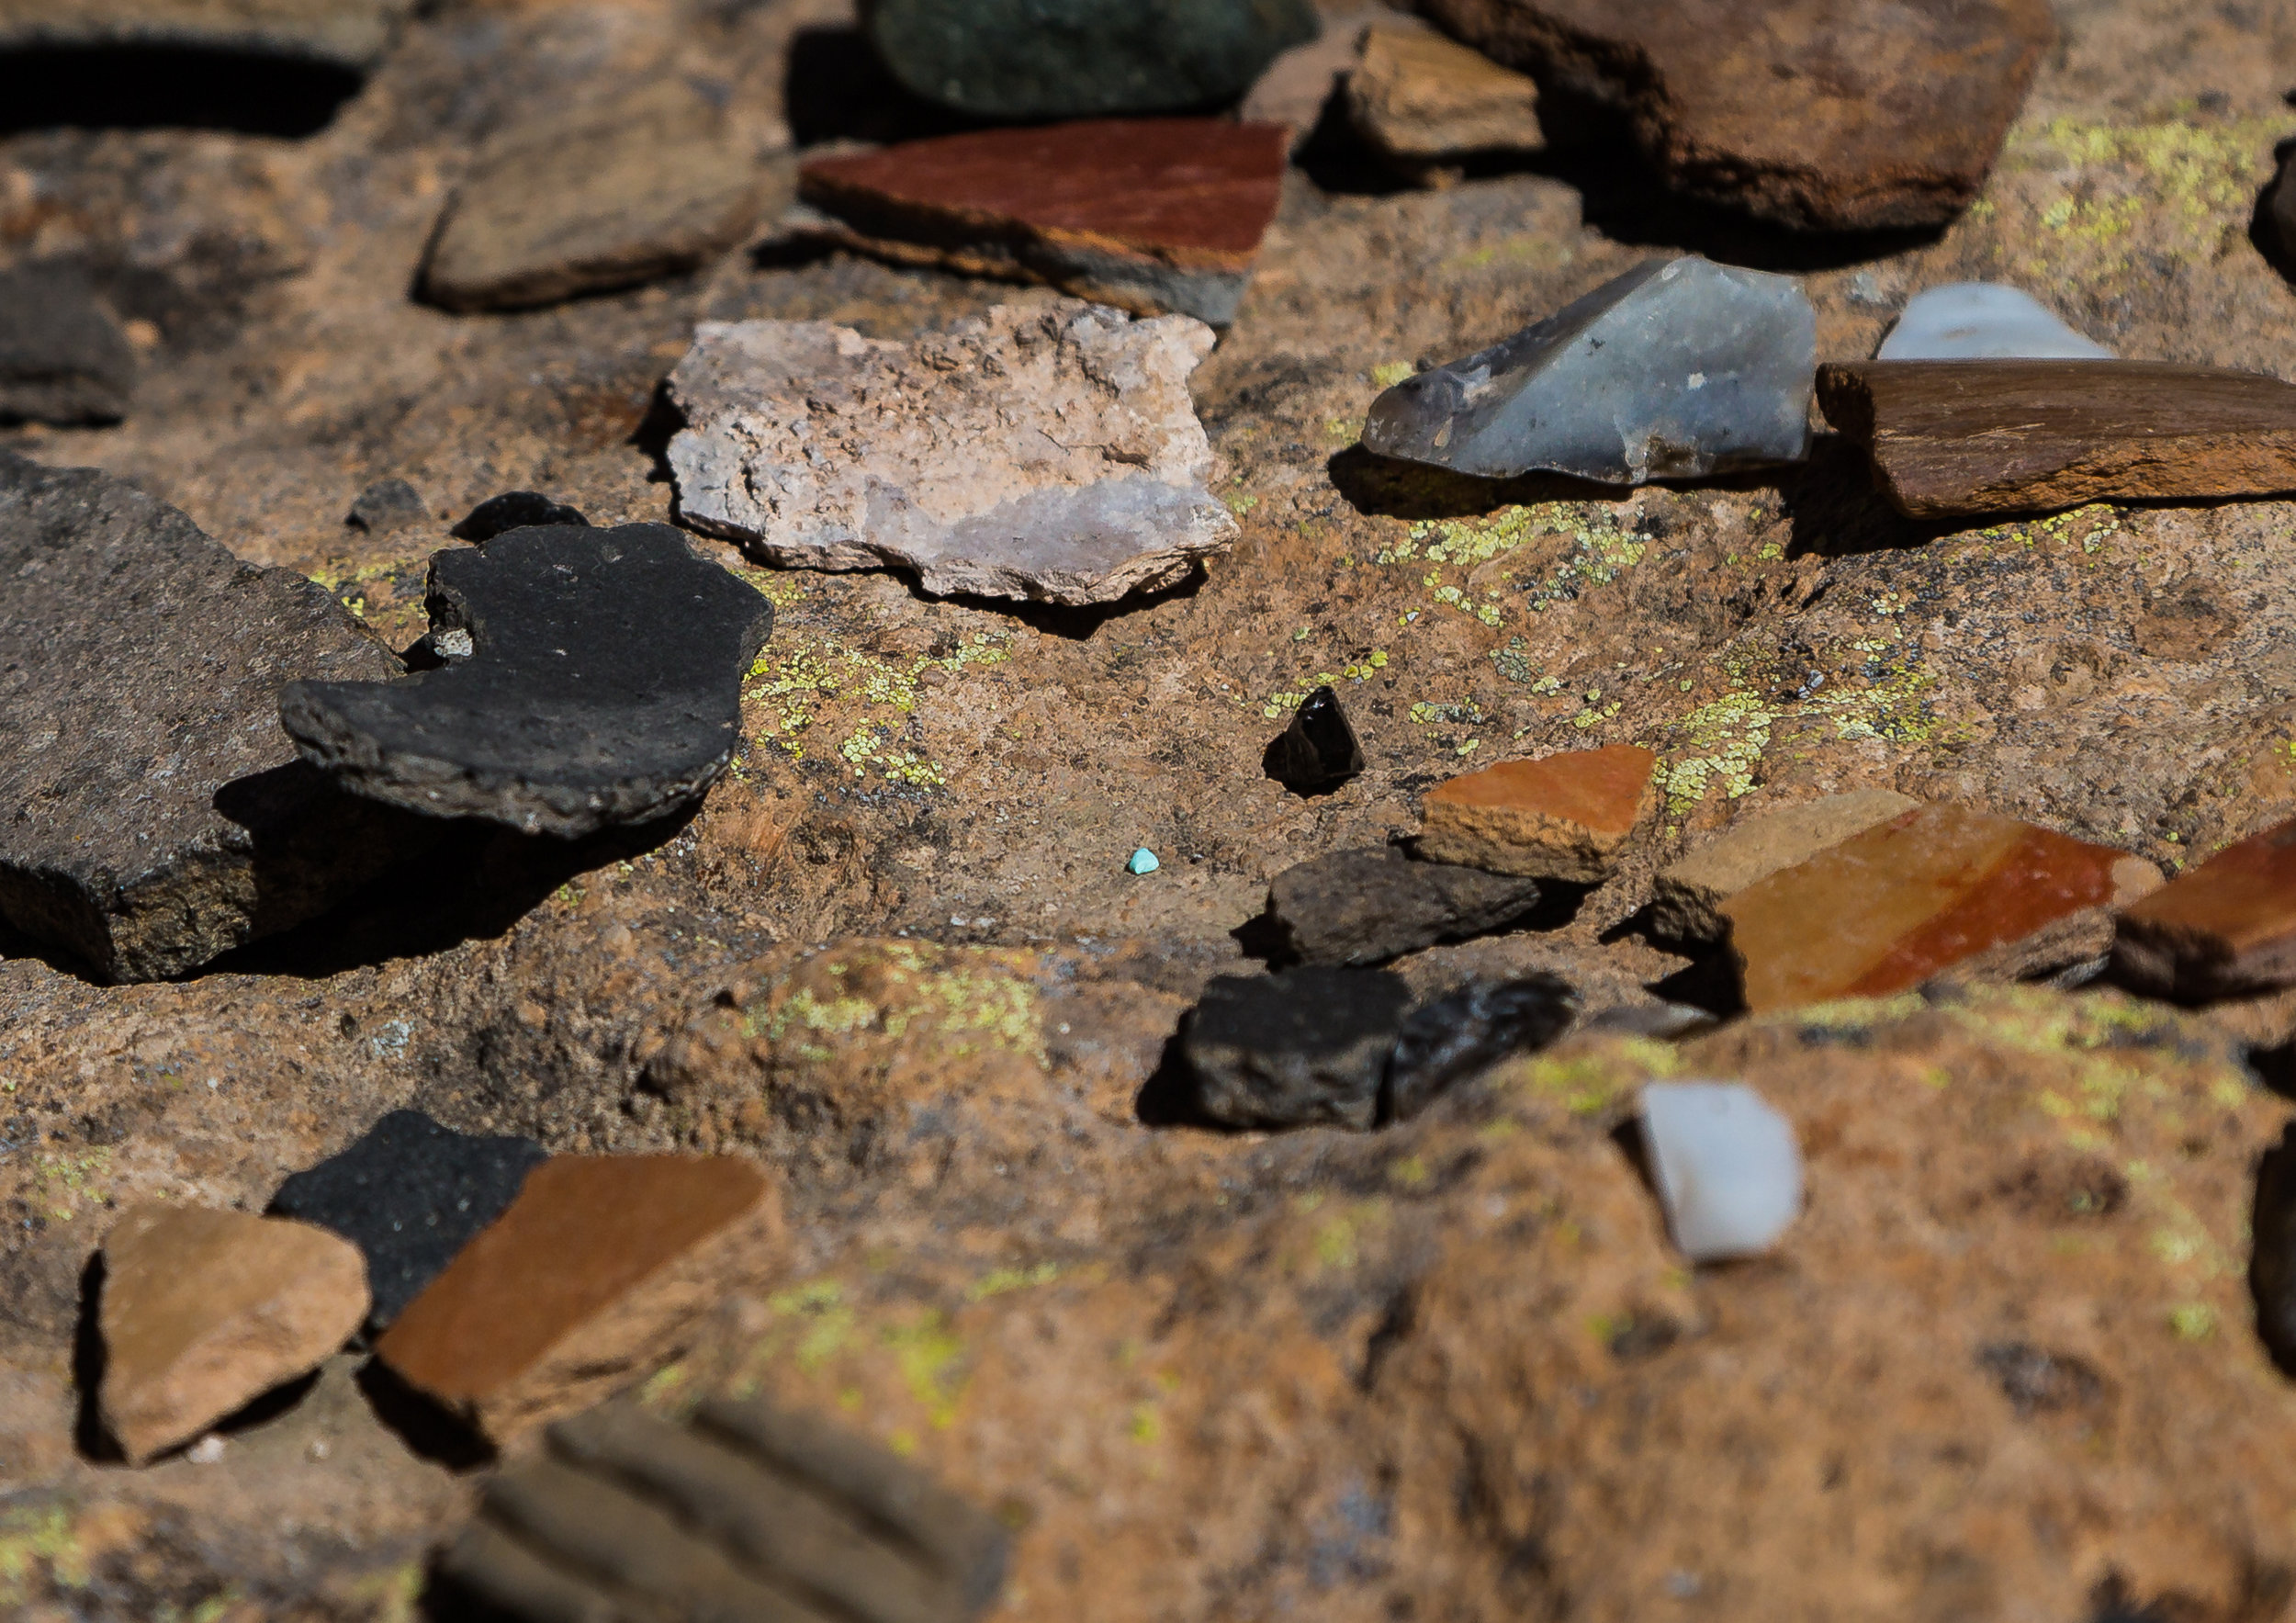 Among the pottery sherds and obsidian flakes, we spotted a rare find: a tiny pebble of turquiose.